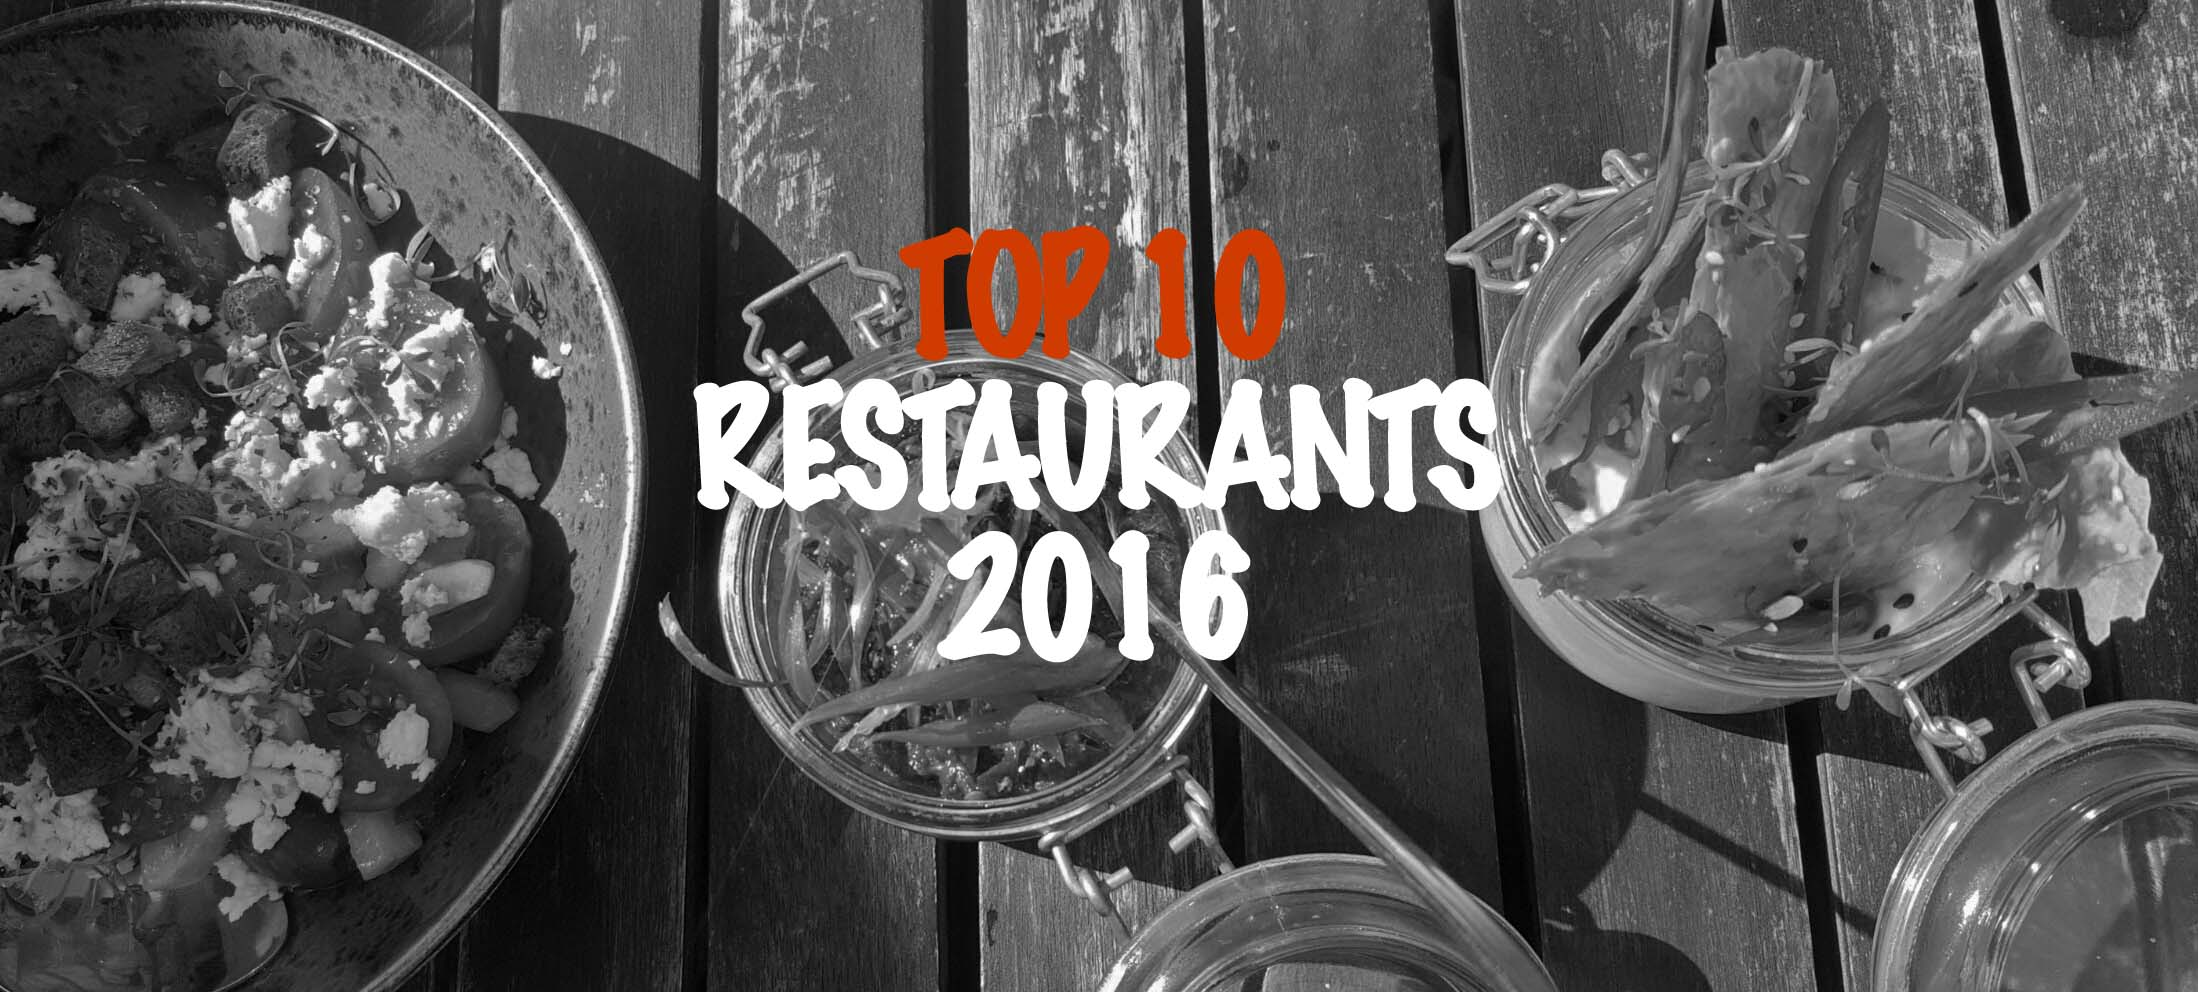 Top 10 Restaurants visited in 2016